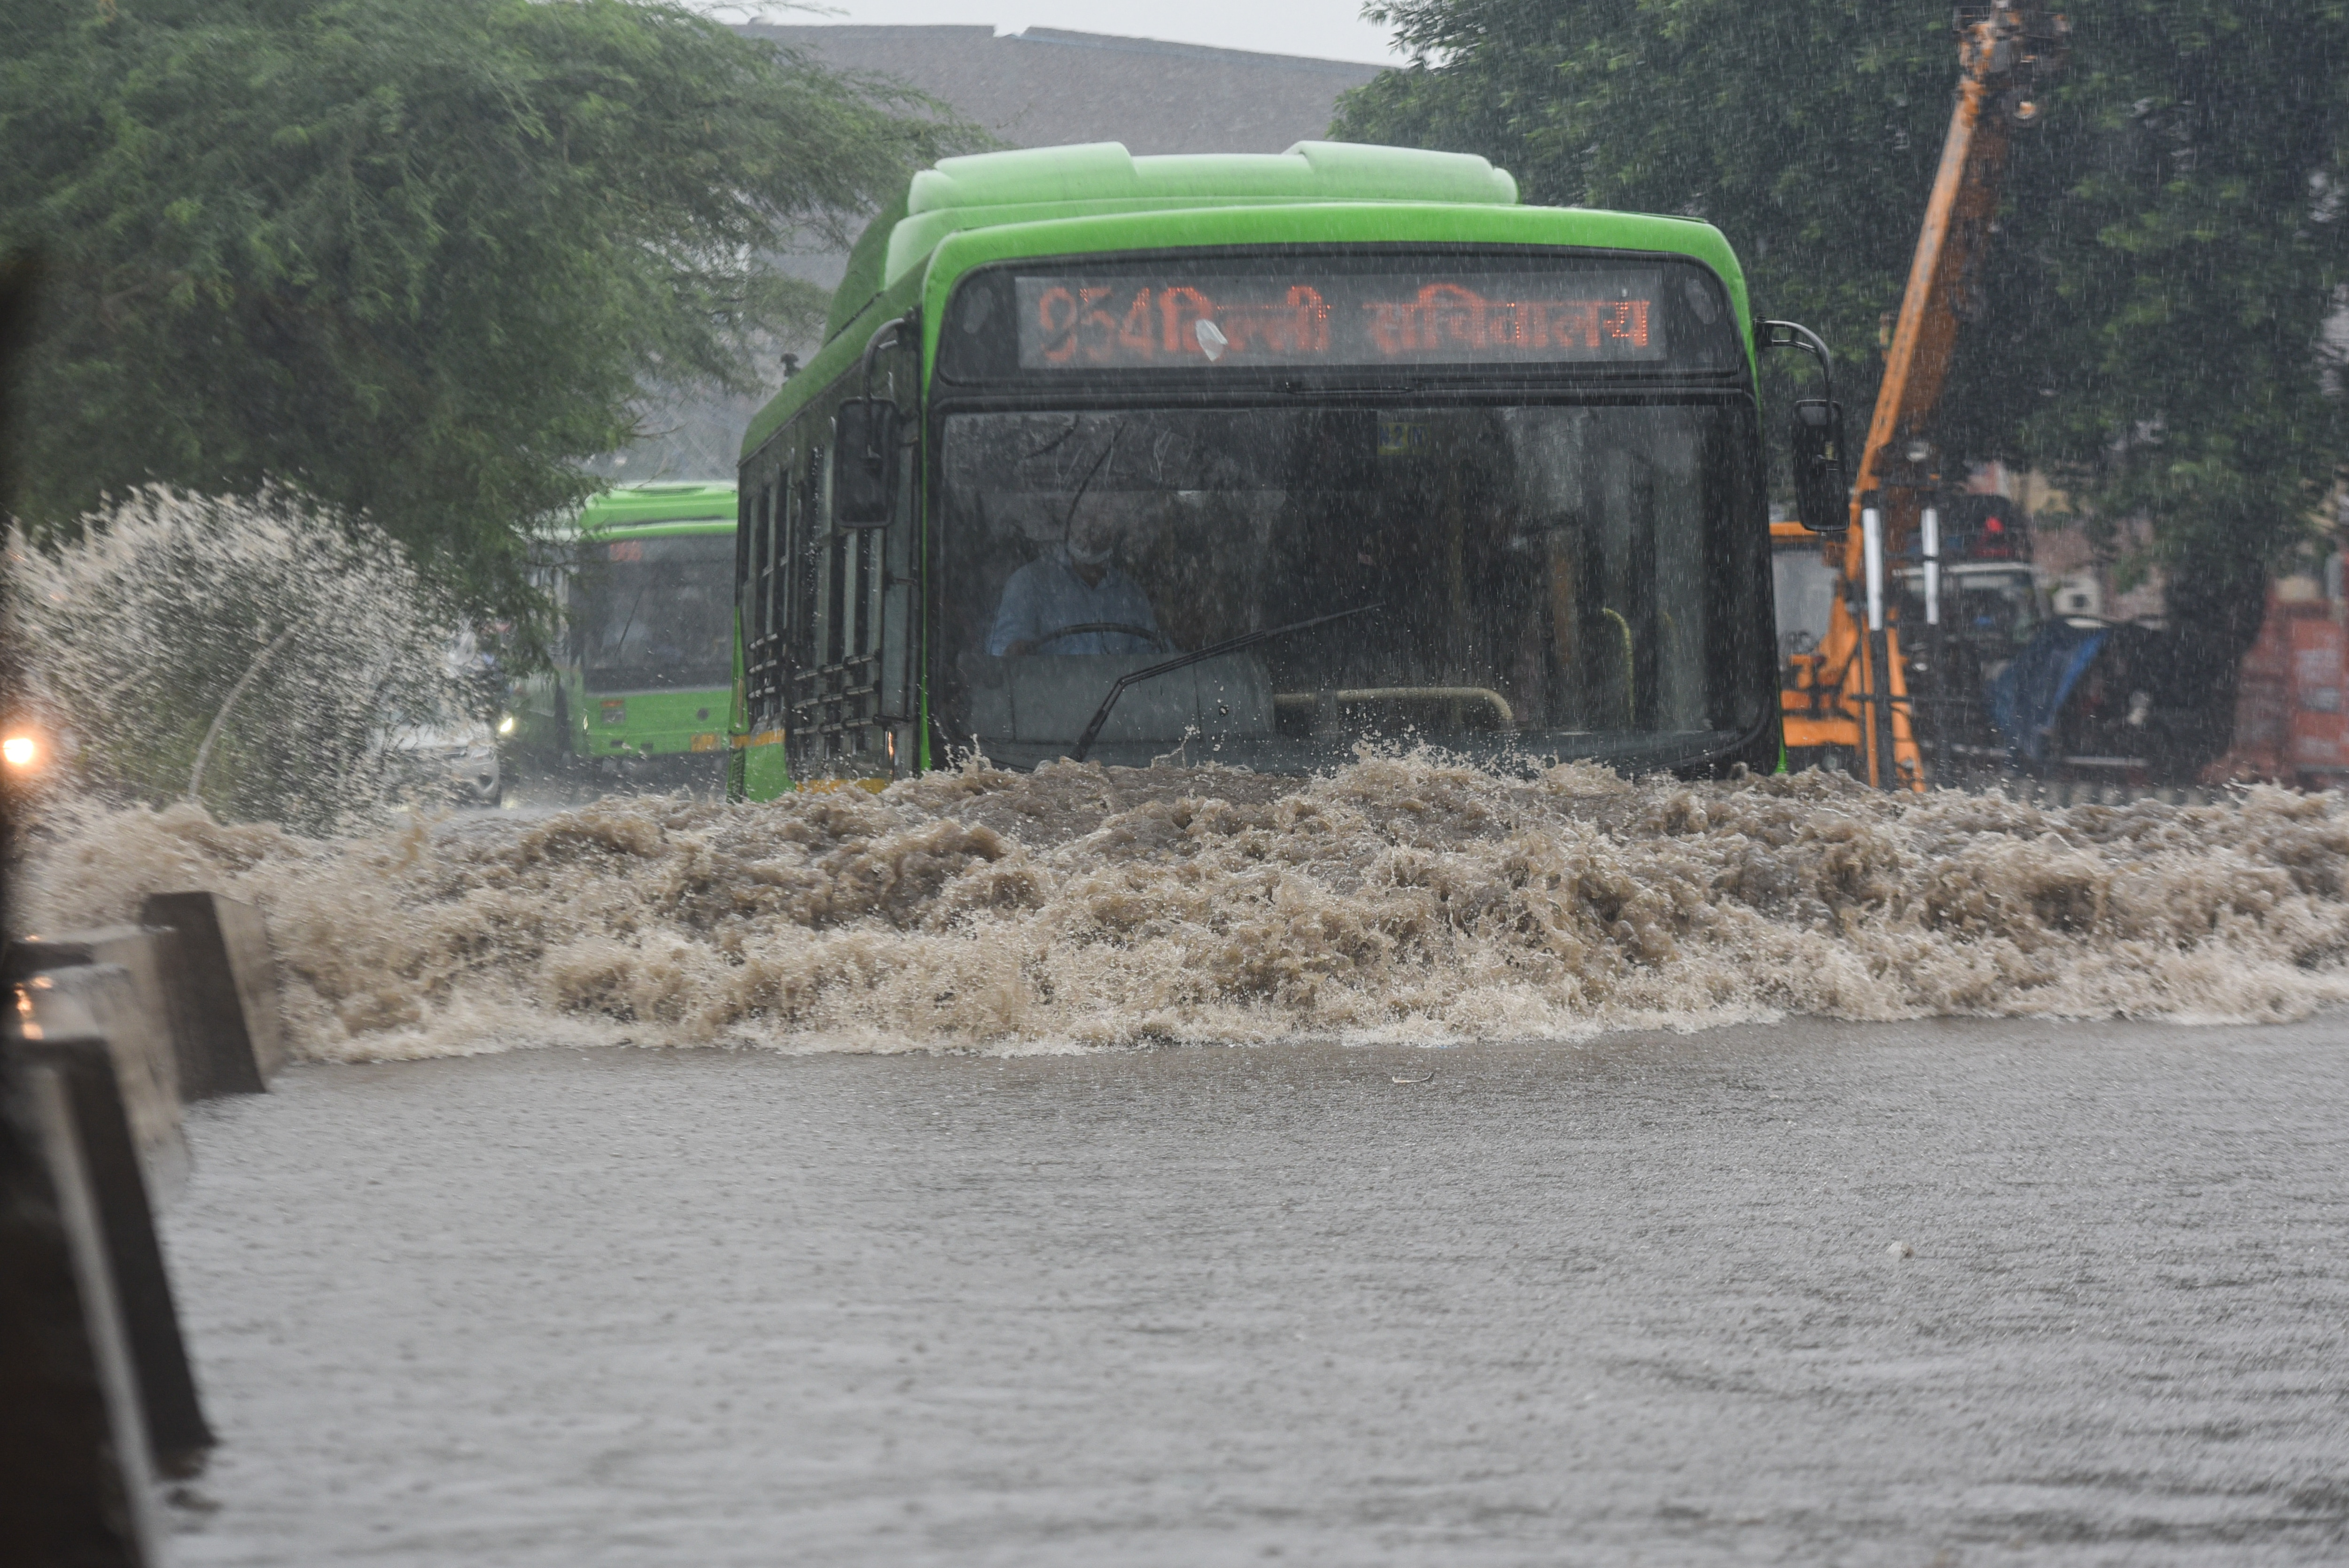 A DTC bus moves through a waterlogged road in Delhi's Anand Parbat. (Sanchit Khanna/HT PHOTO)